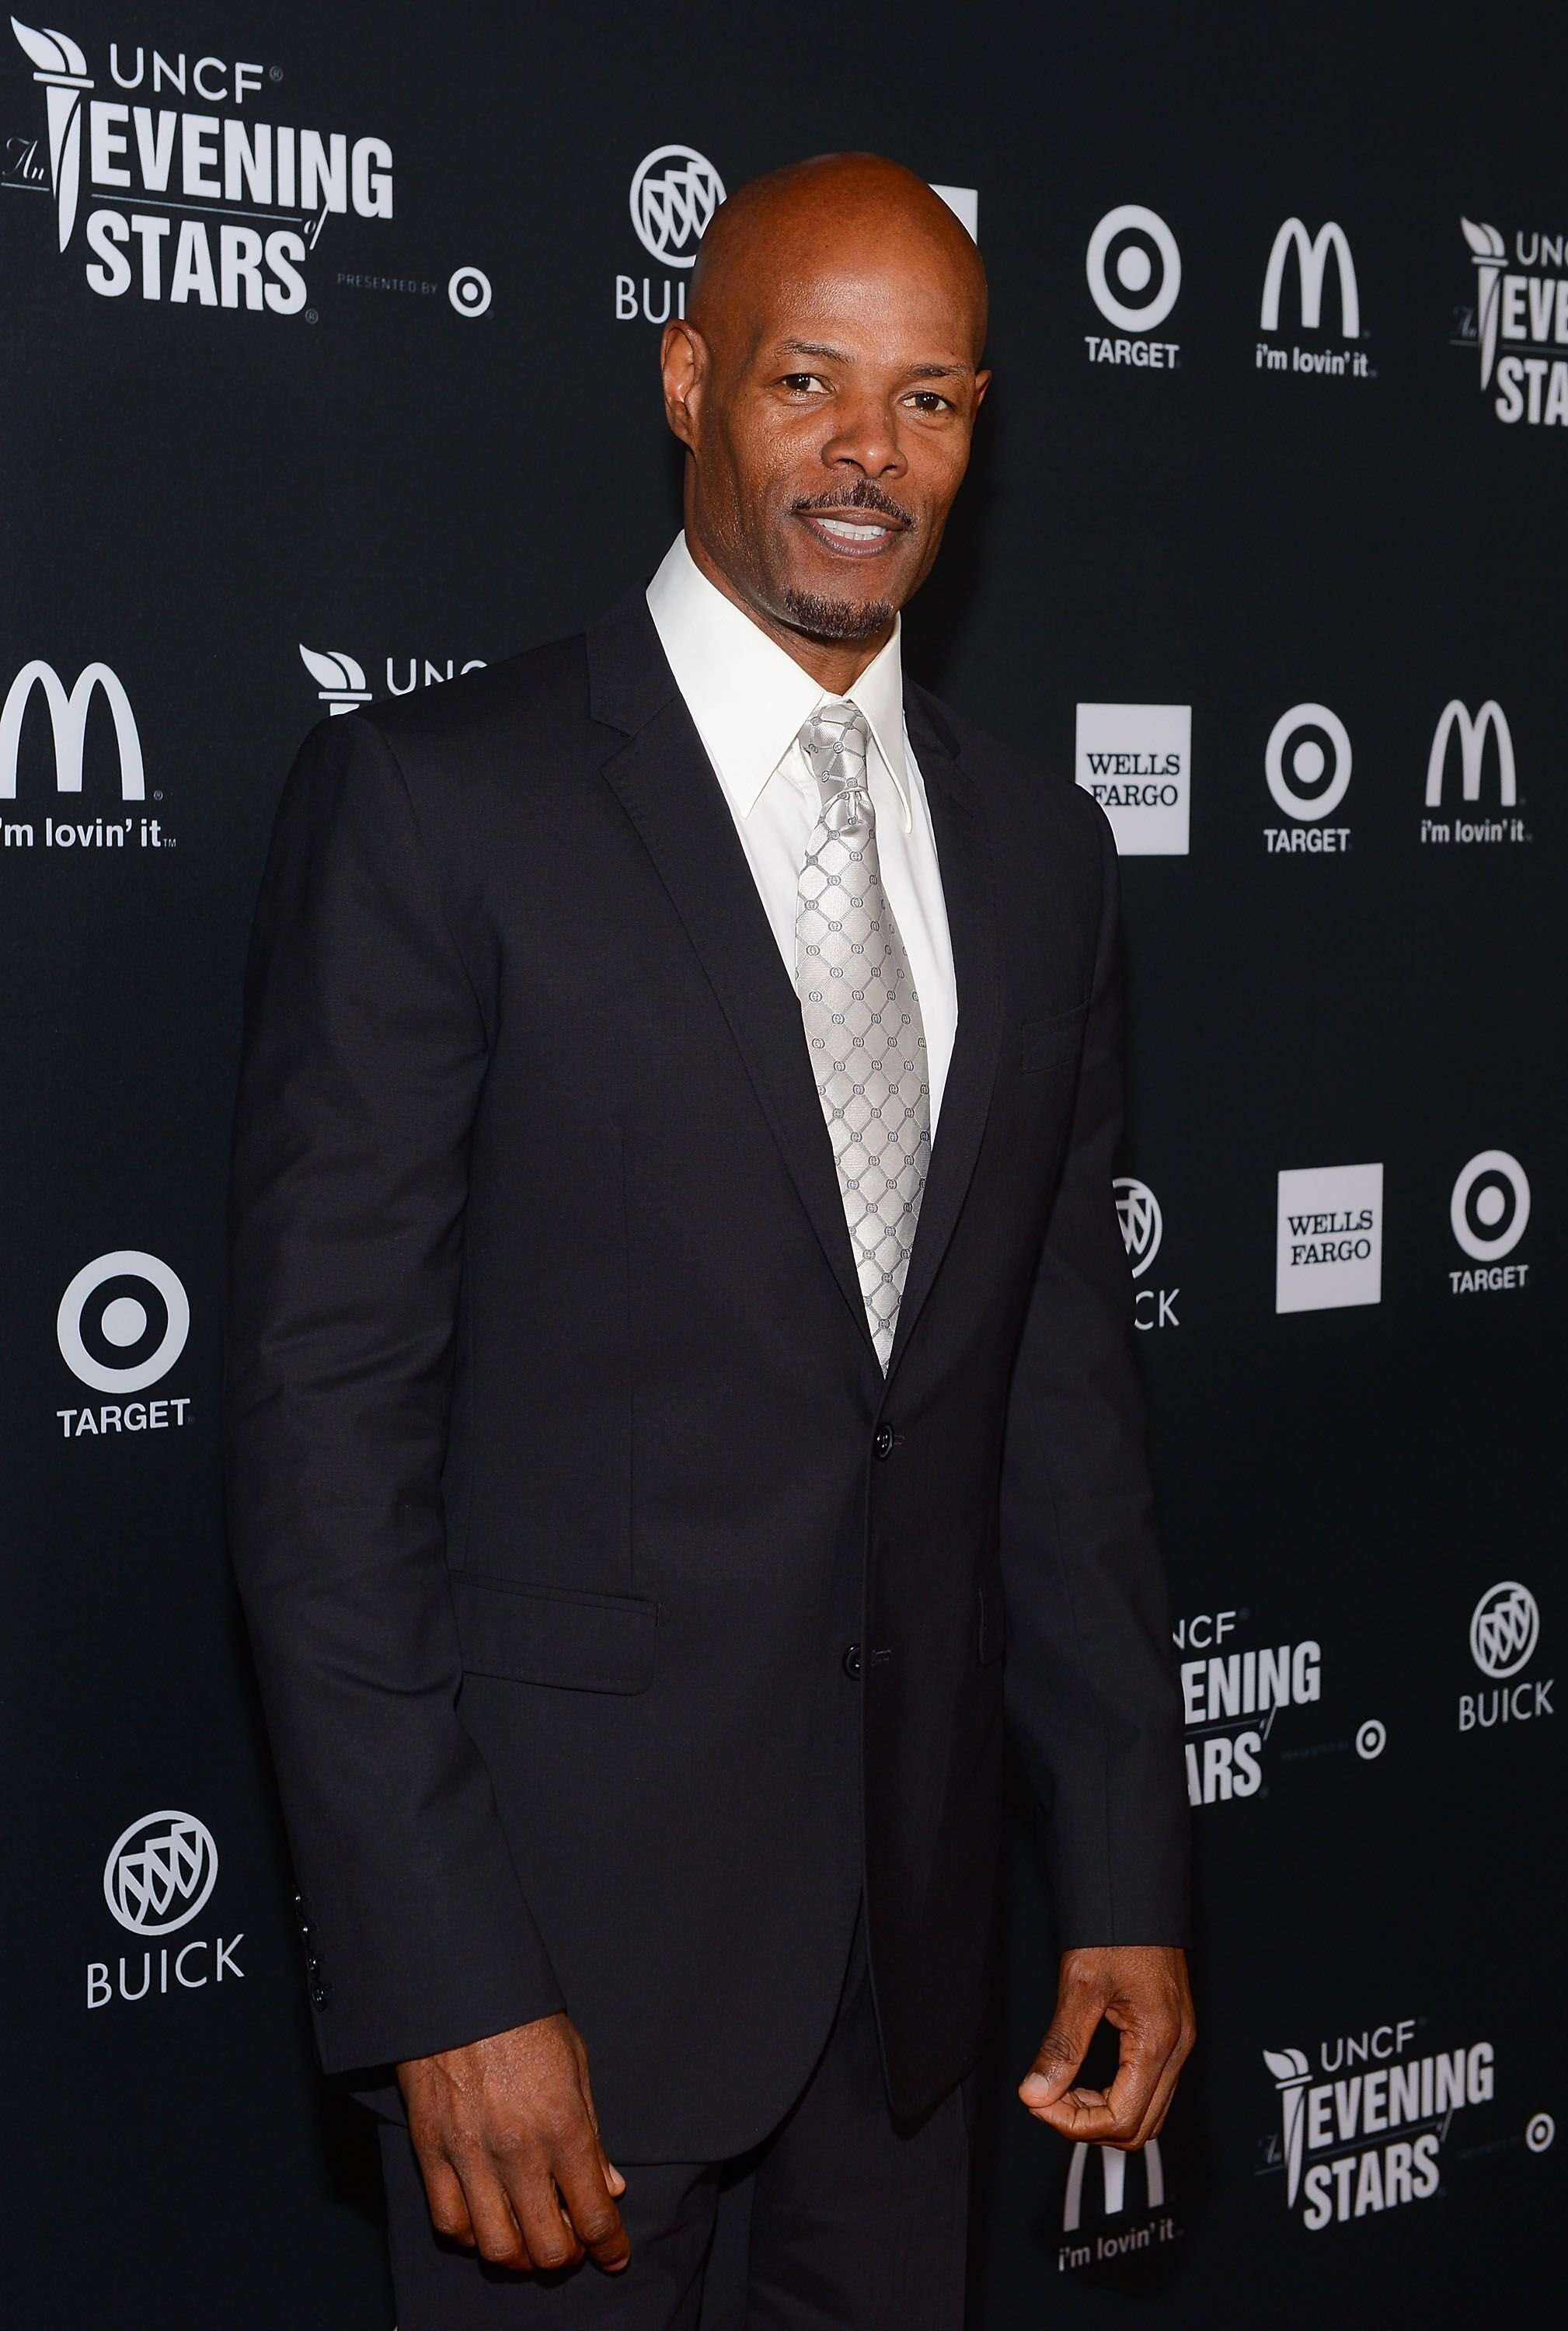 Keenen Ivory Wayans arrives at UNCF's 34th Annual An Evening Of Stars held at Pasadena Civic Auditorium | Photo: Getty Images